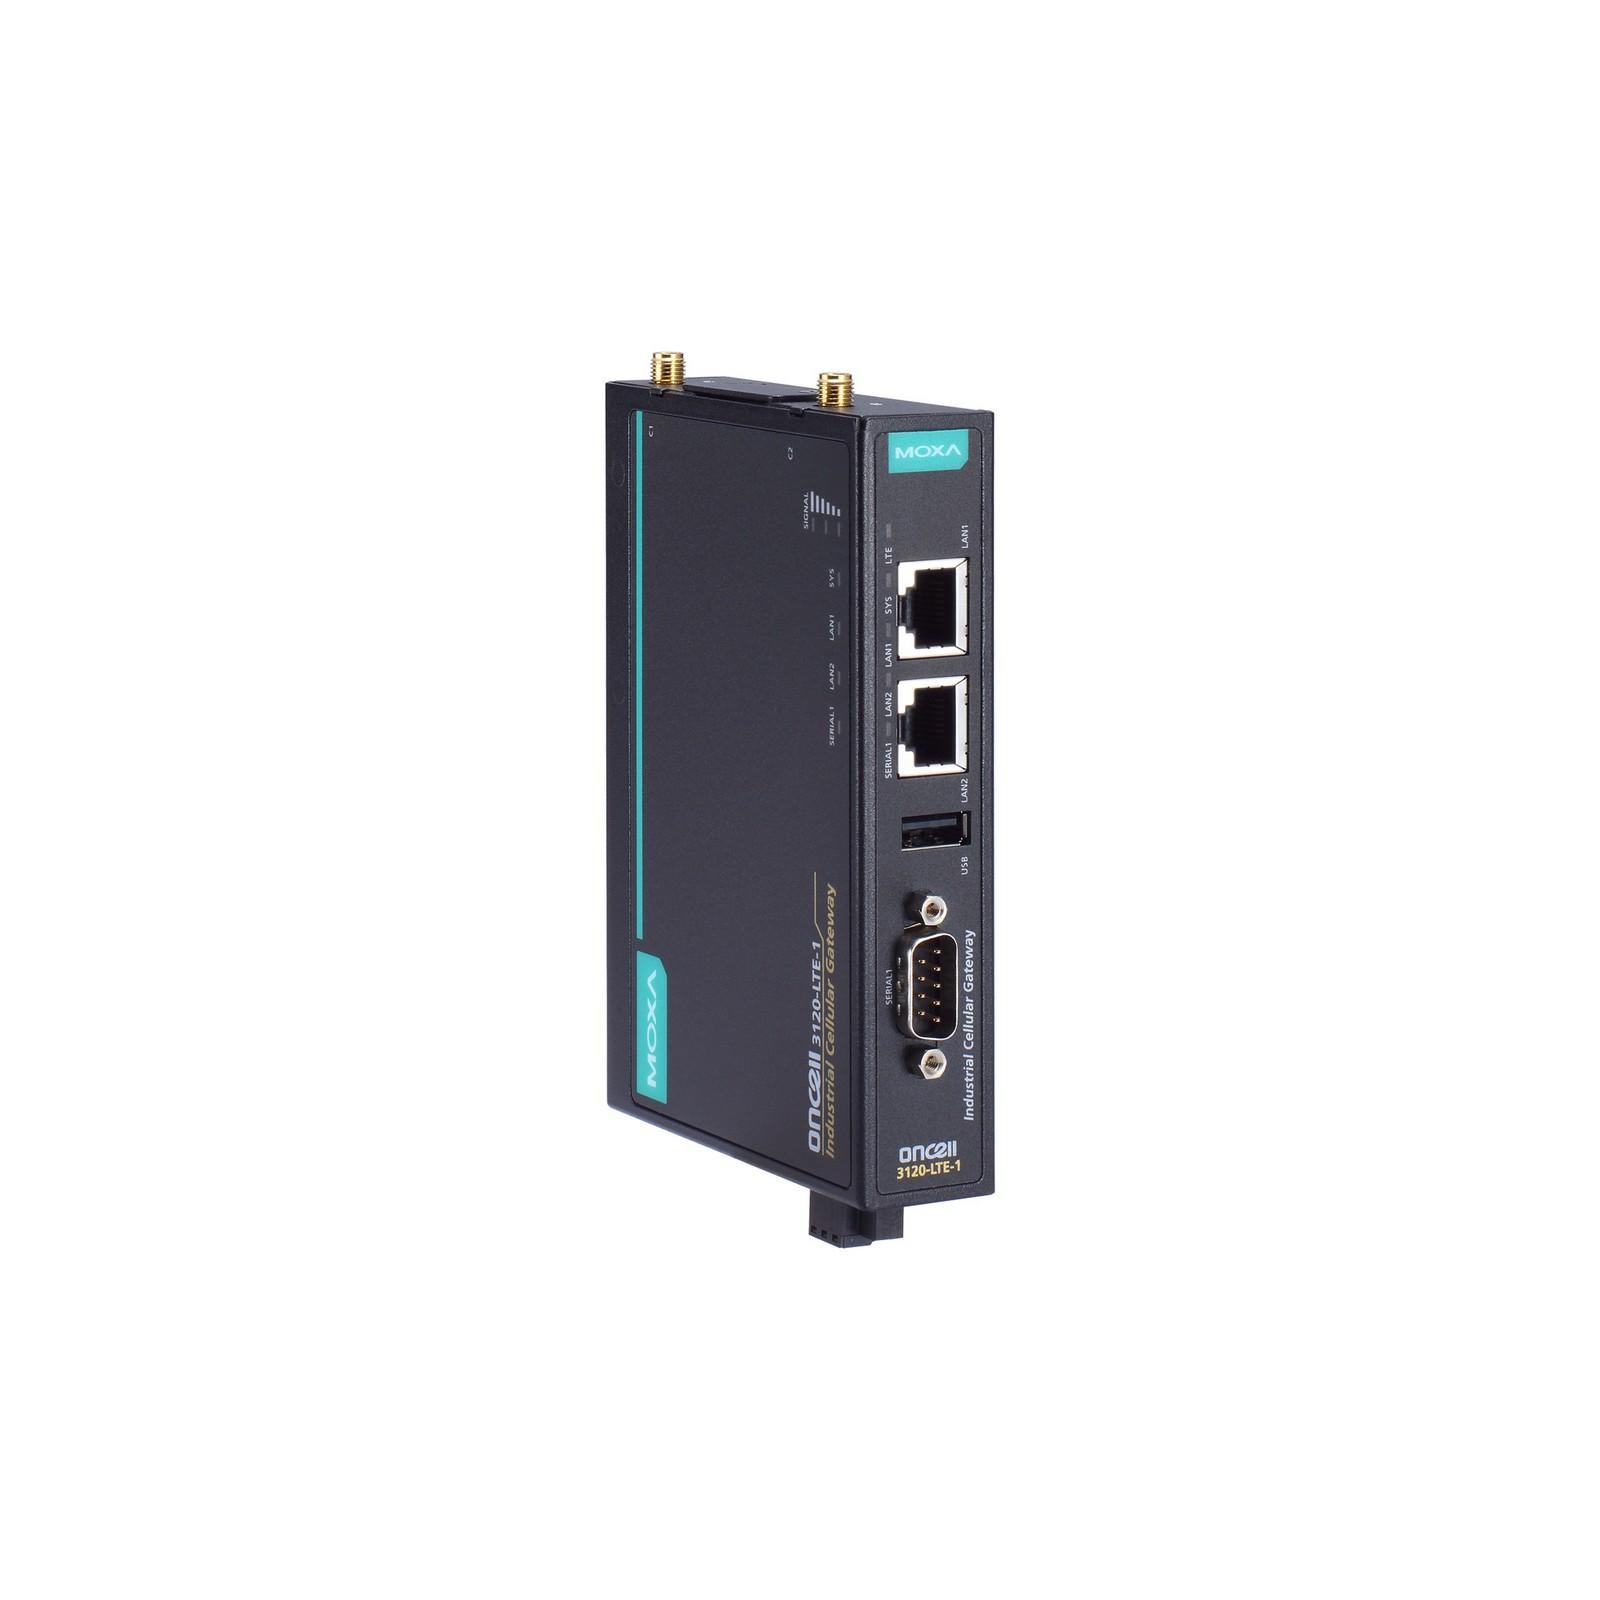 OnCell 3120-LTE-1 Series